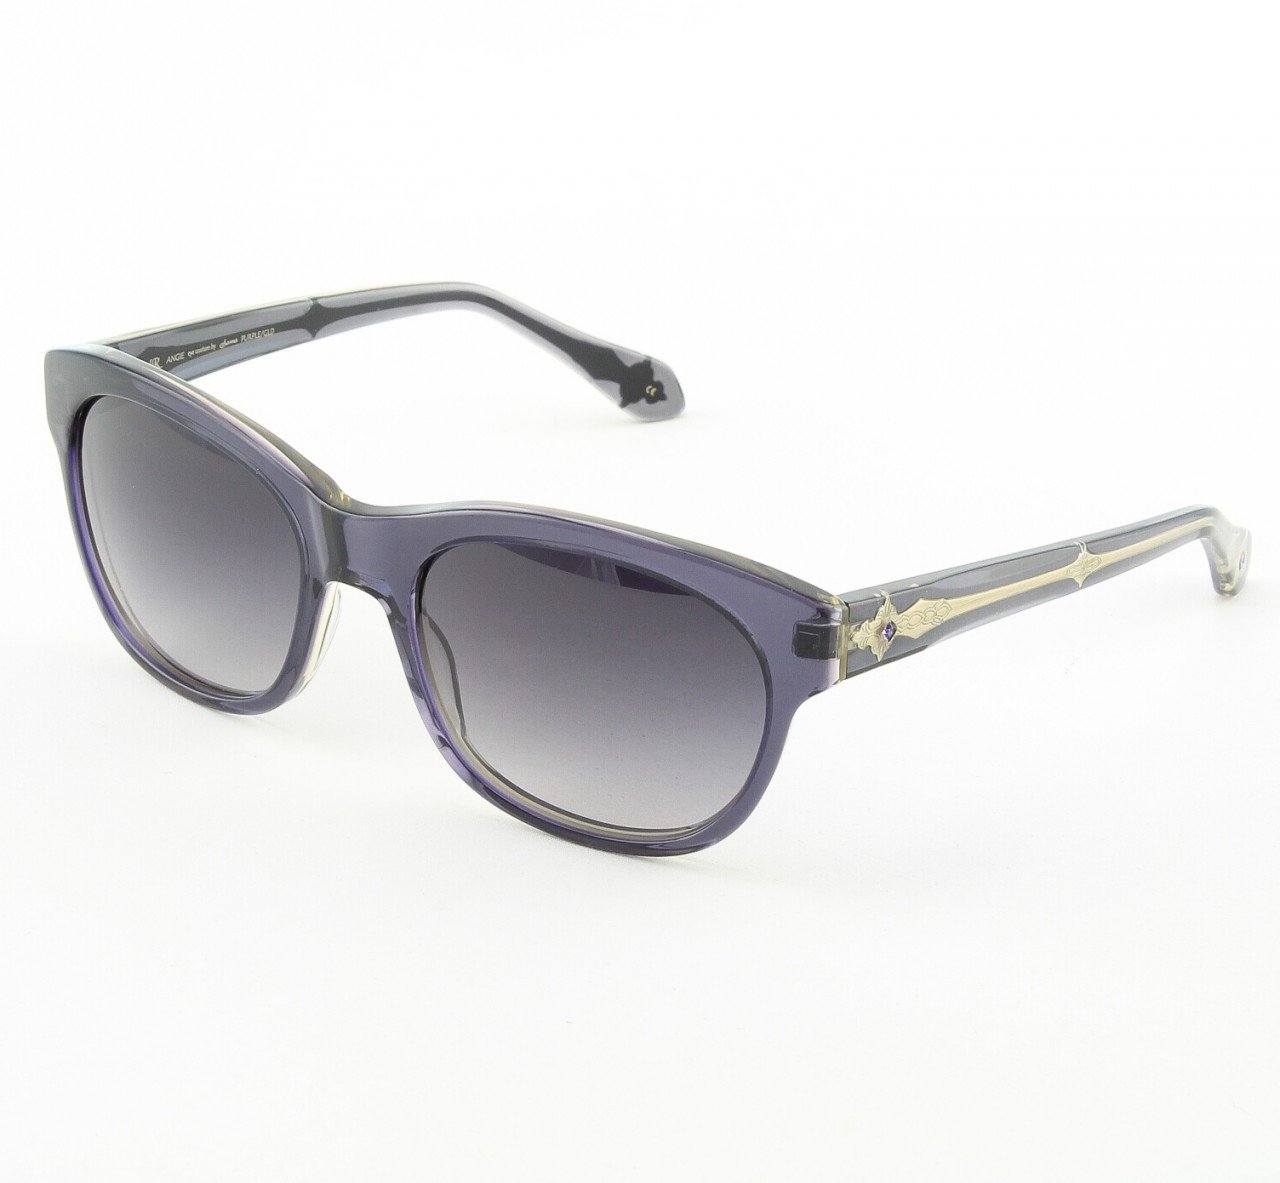 Loree Rodkin Angie Sunglasses by Sama Col. Purple with Gray Lenses and Swarovski Crystals